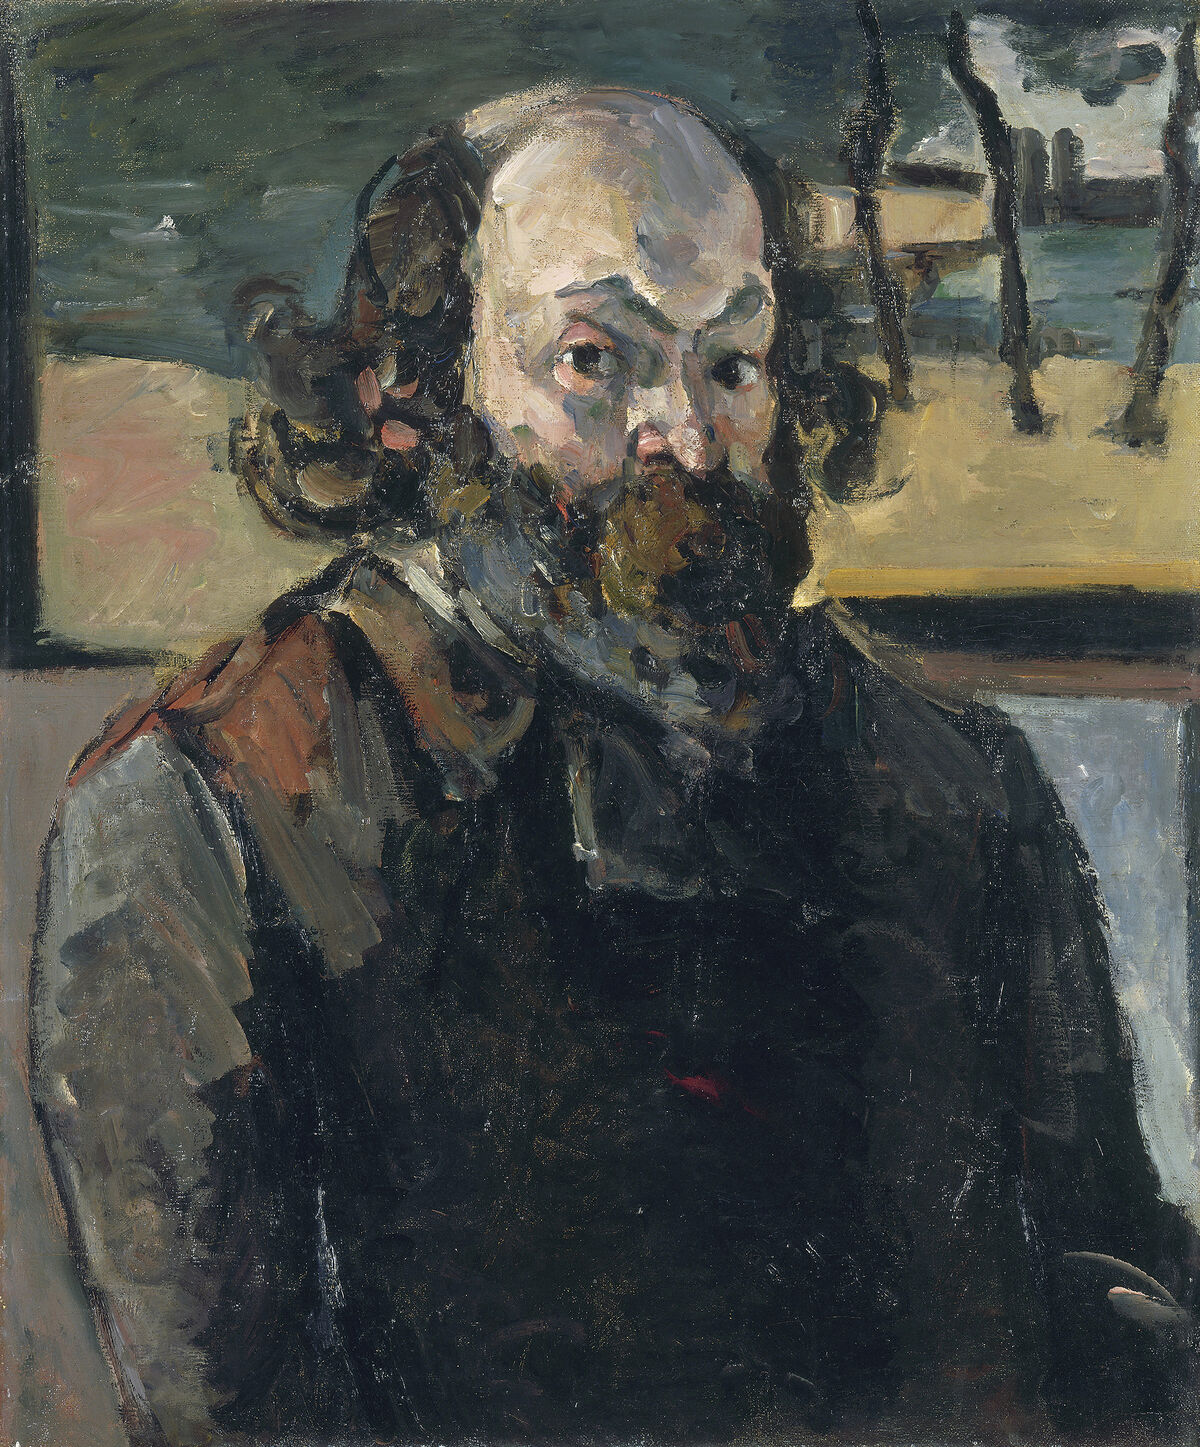 Paul Cézanne, Self-Portrait, c. 1875. Courtesy of the National Gallery of Art.